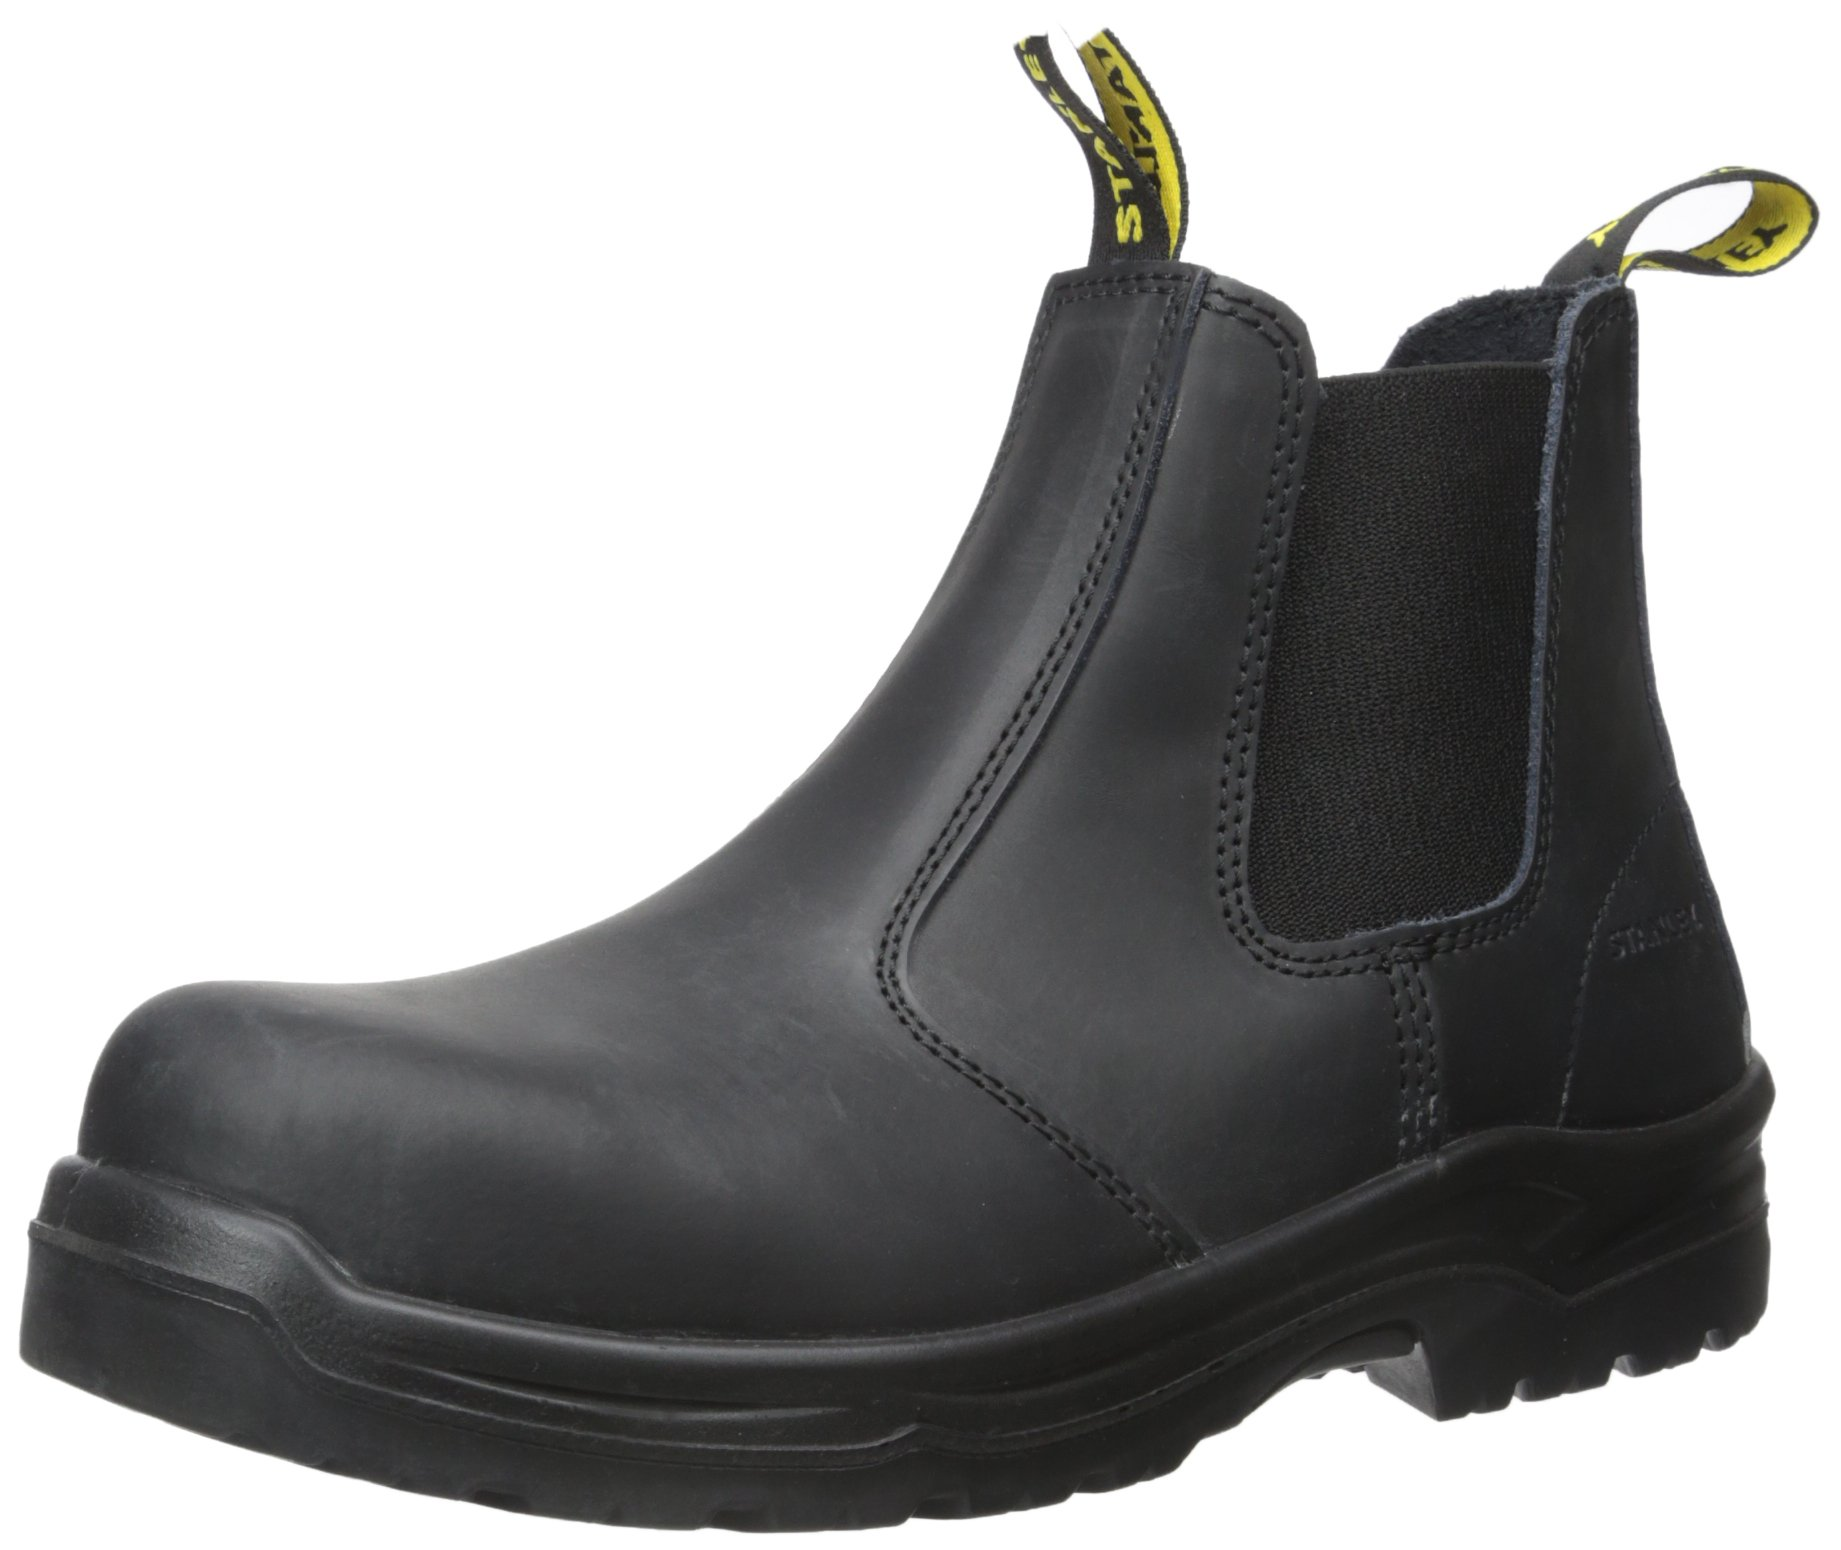 Stanley Men's Dredge Steel Toe Work Boot, Black, 11 D US by Stanley